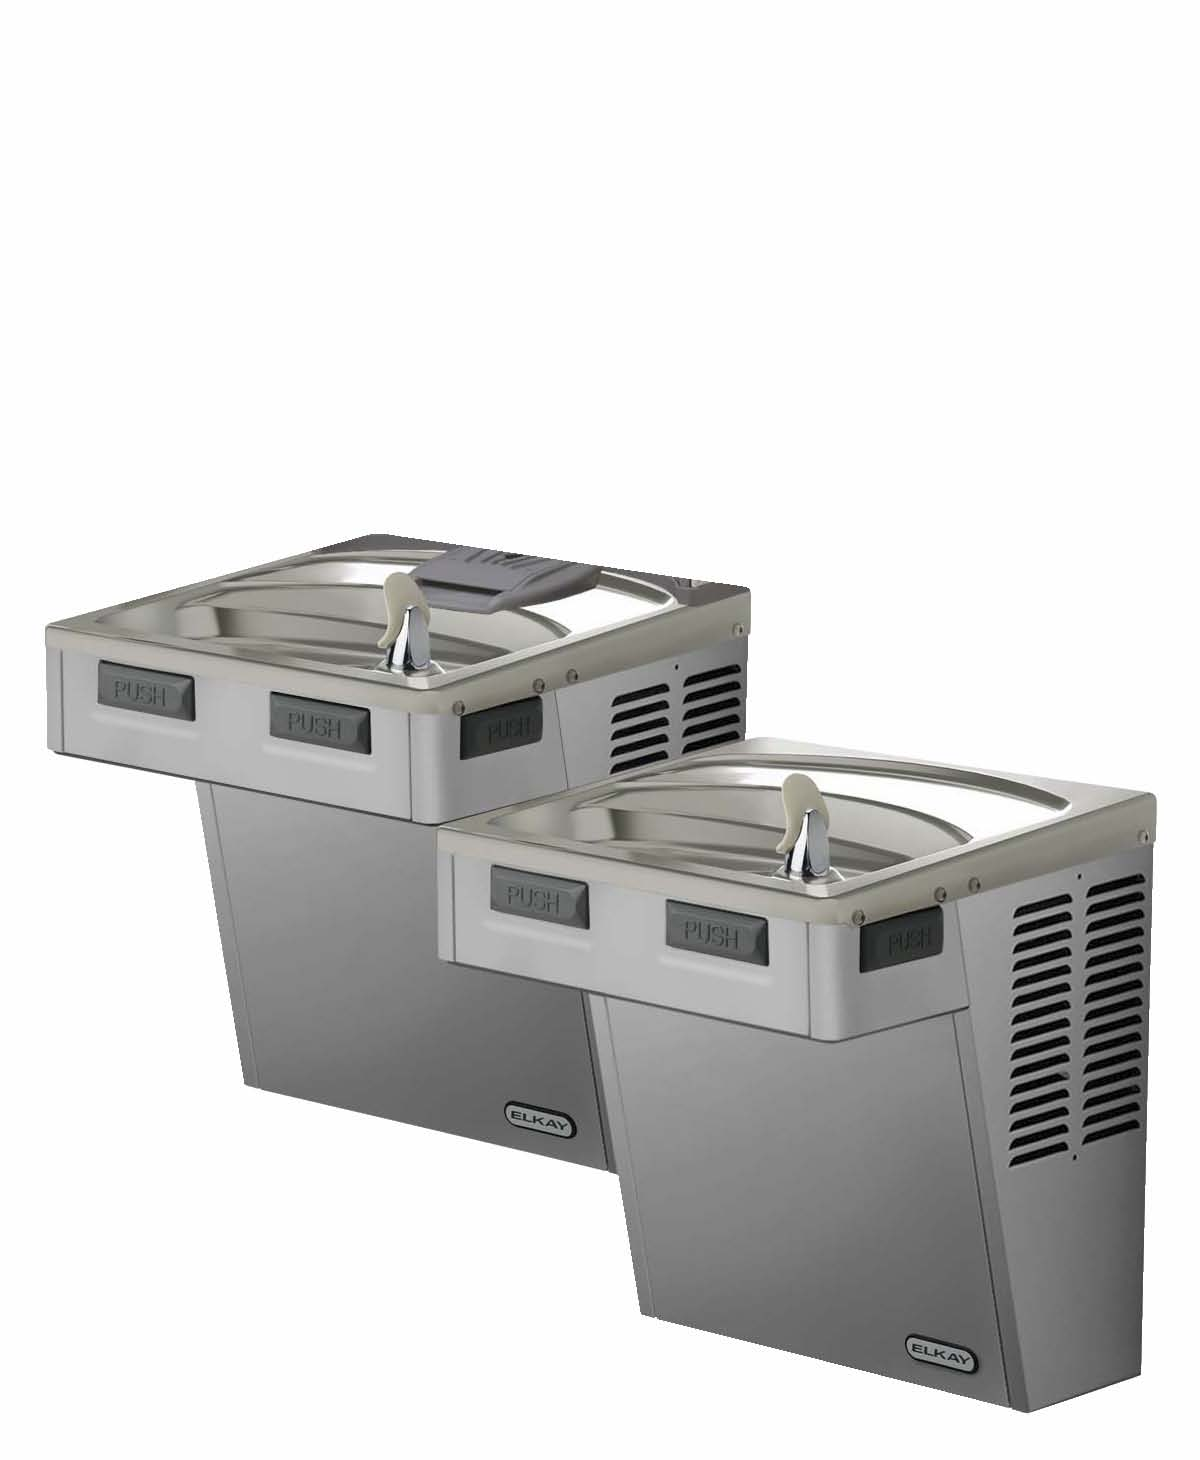 filtered emabf water cooler combination download